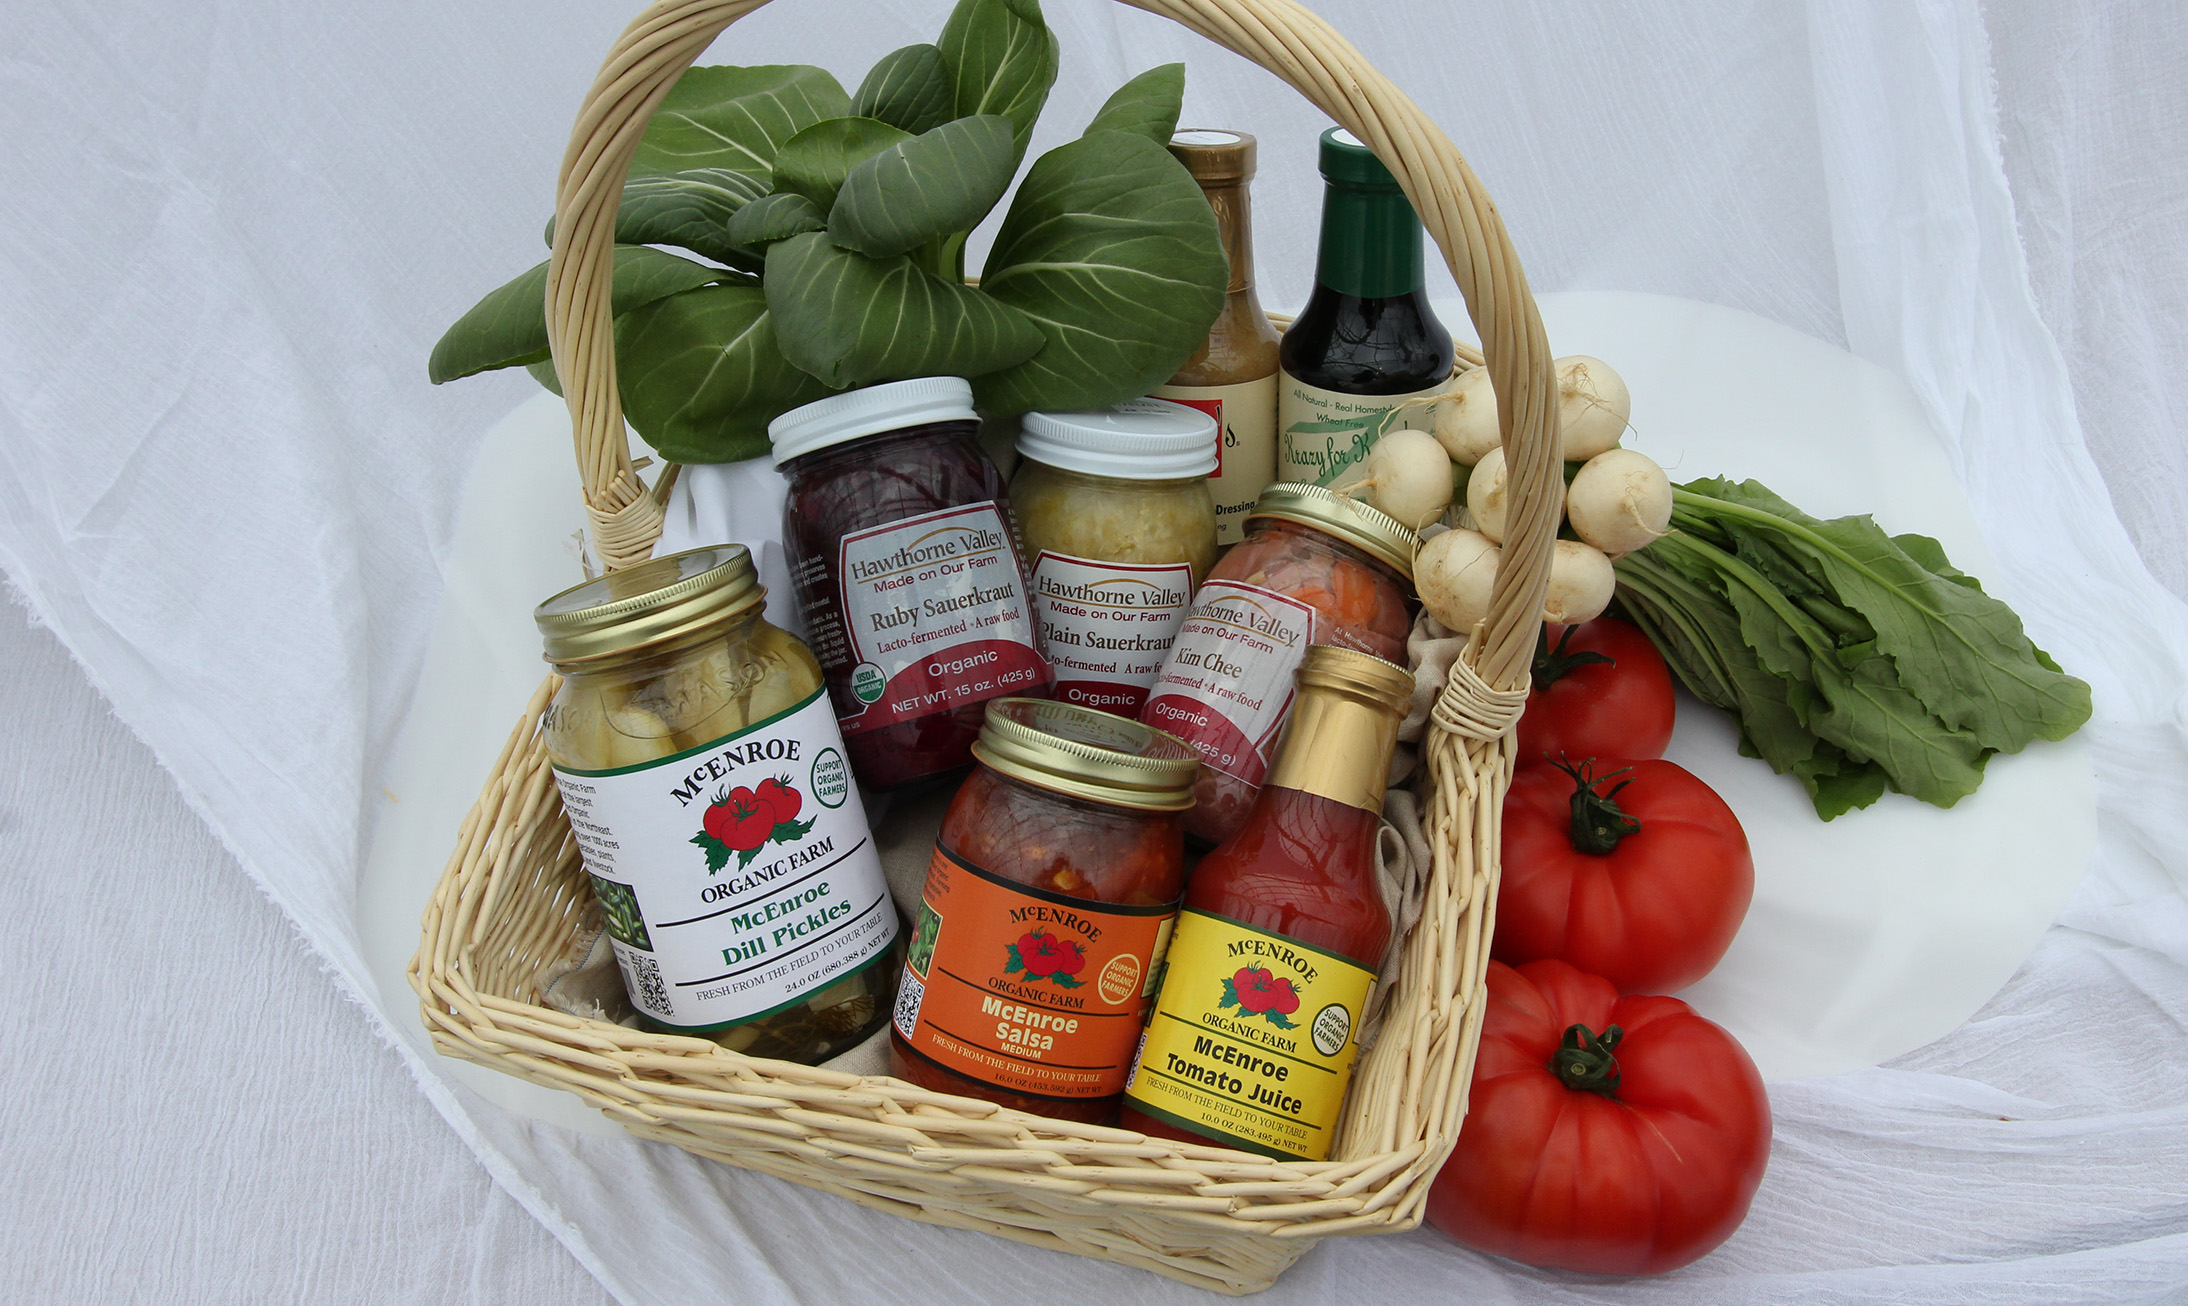 We Offer a Wide Selection of Organic and Regional Products